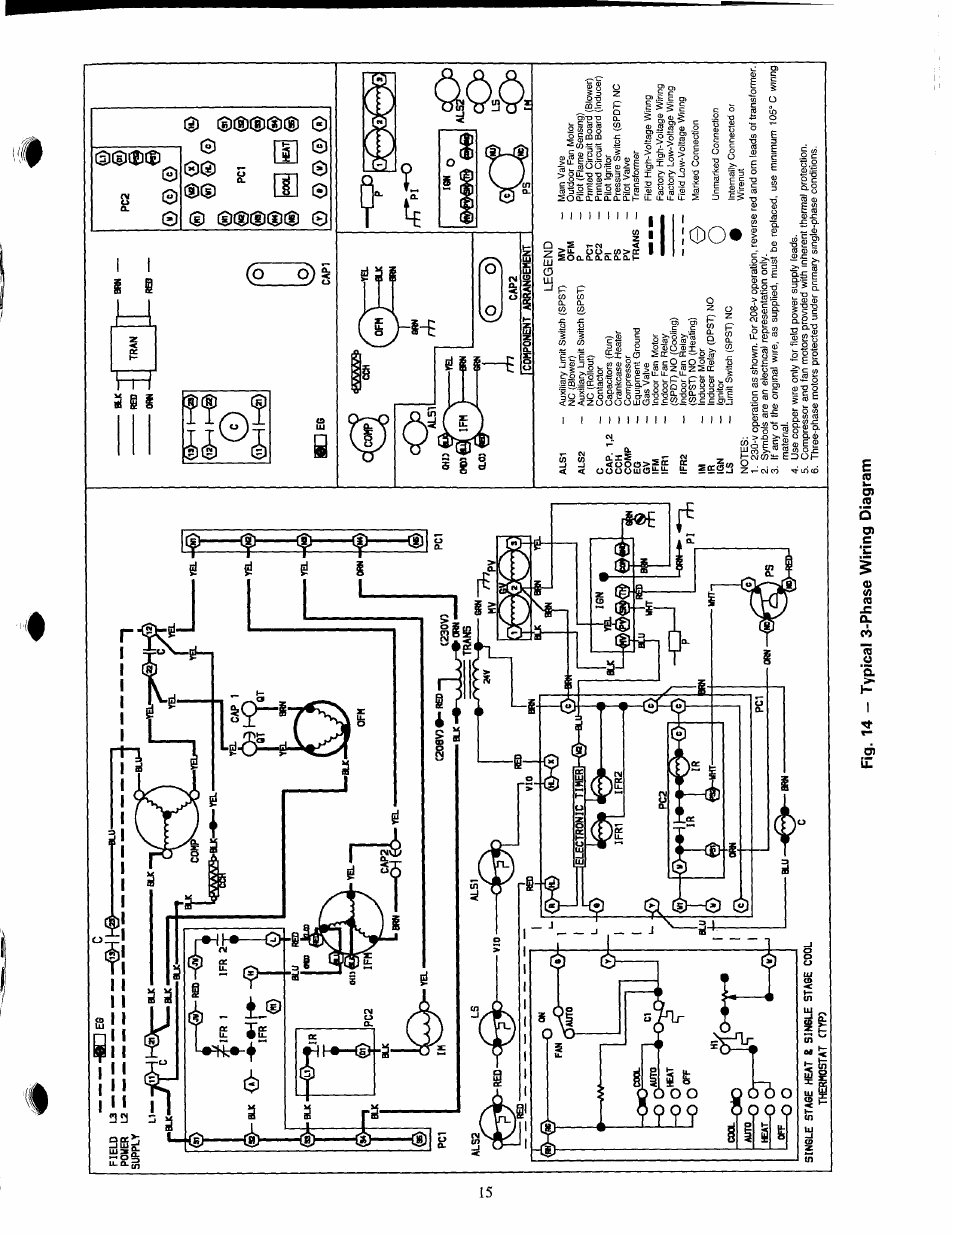 Fig. 14 — typical 3-phase wiring diagram, 1 co o